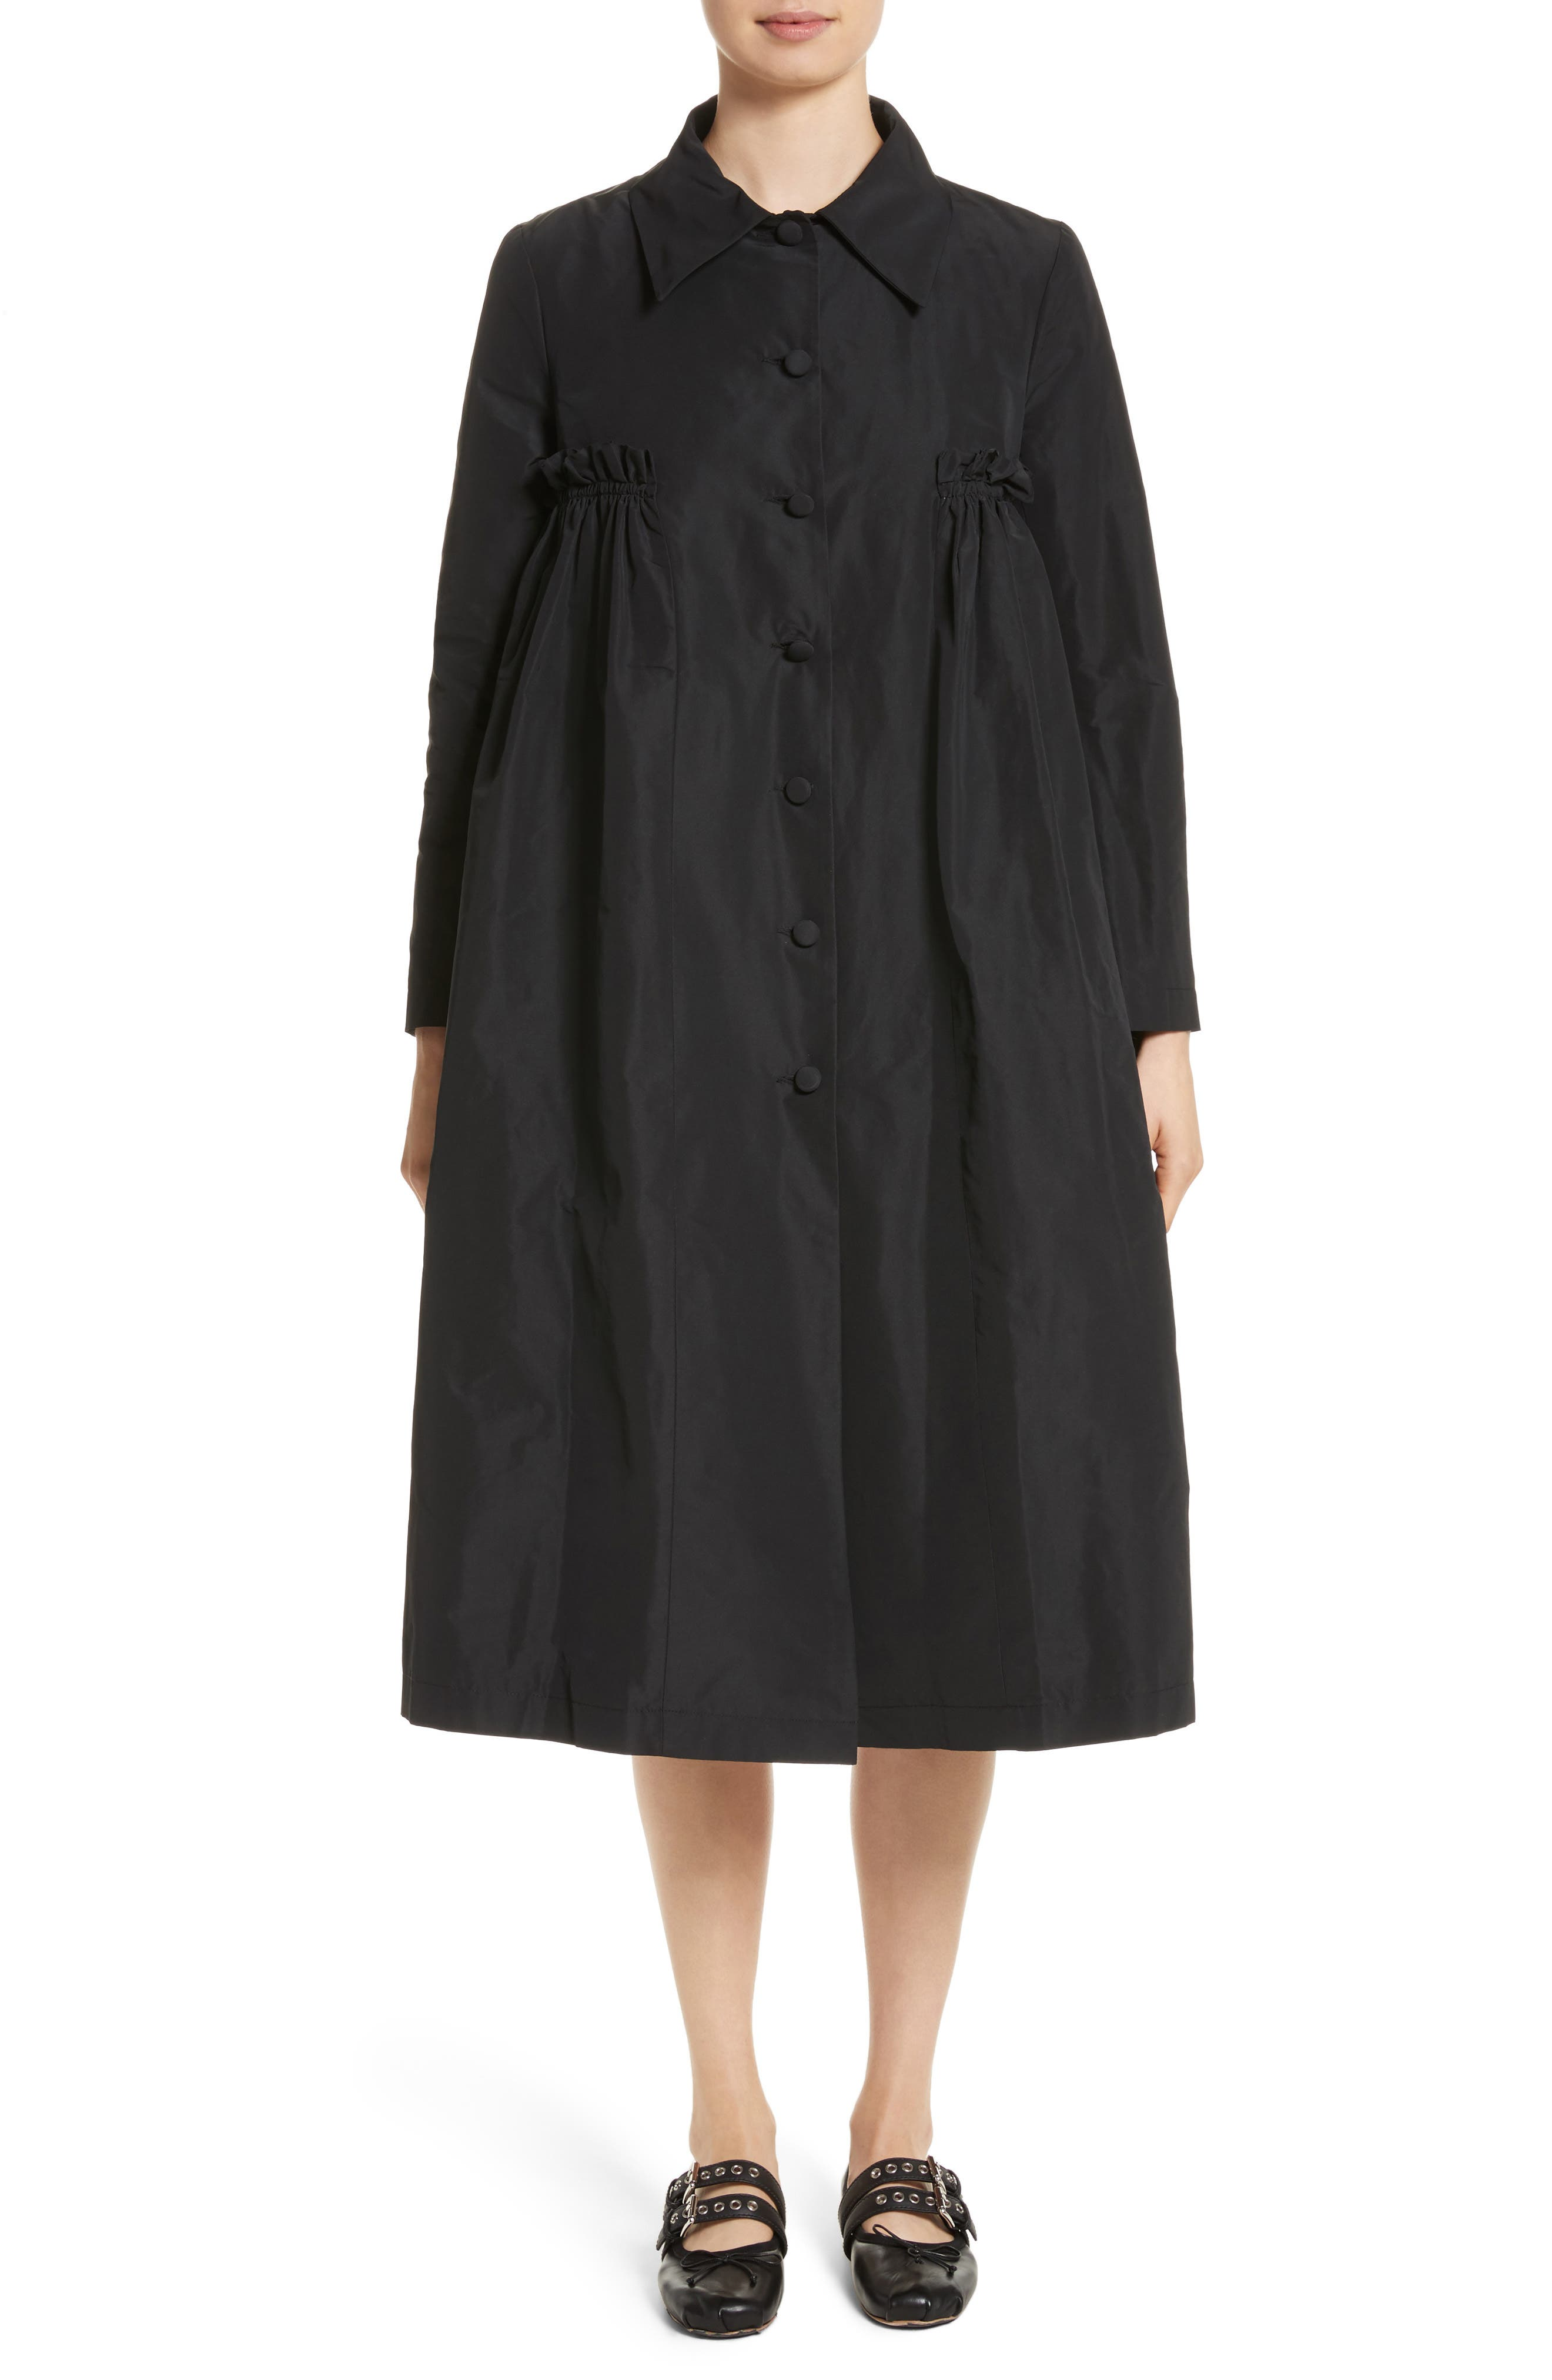 Alternate Image 1 Selected - Molly Goddard Pluto Taffeta Coat